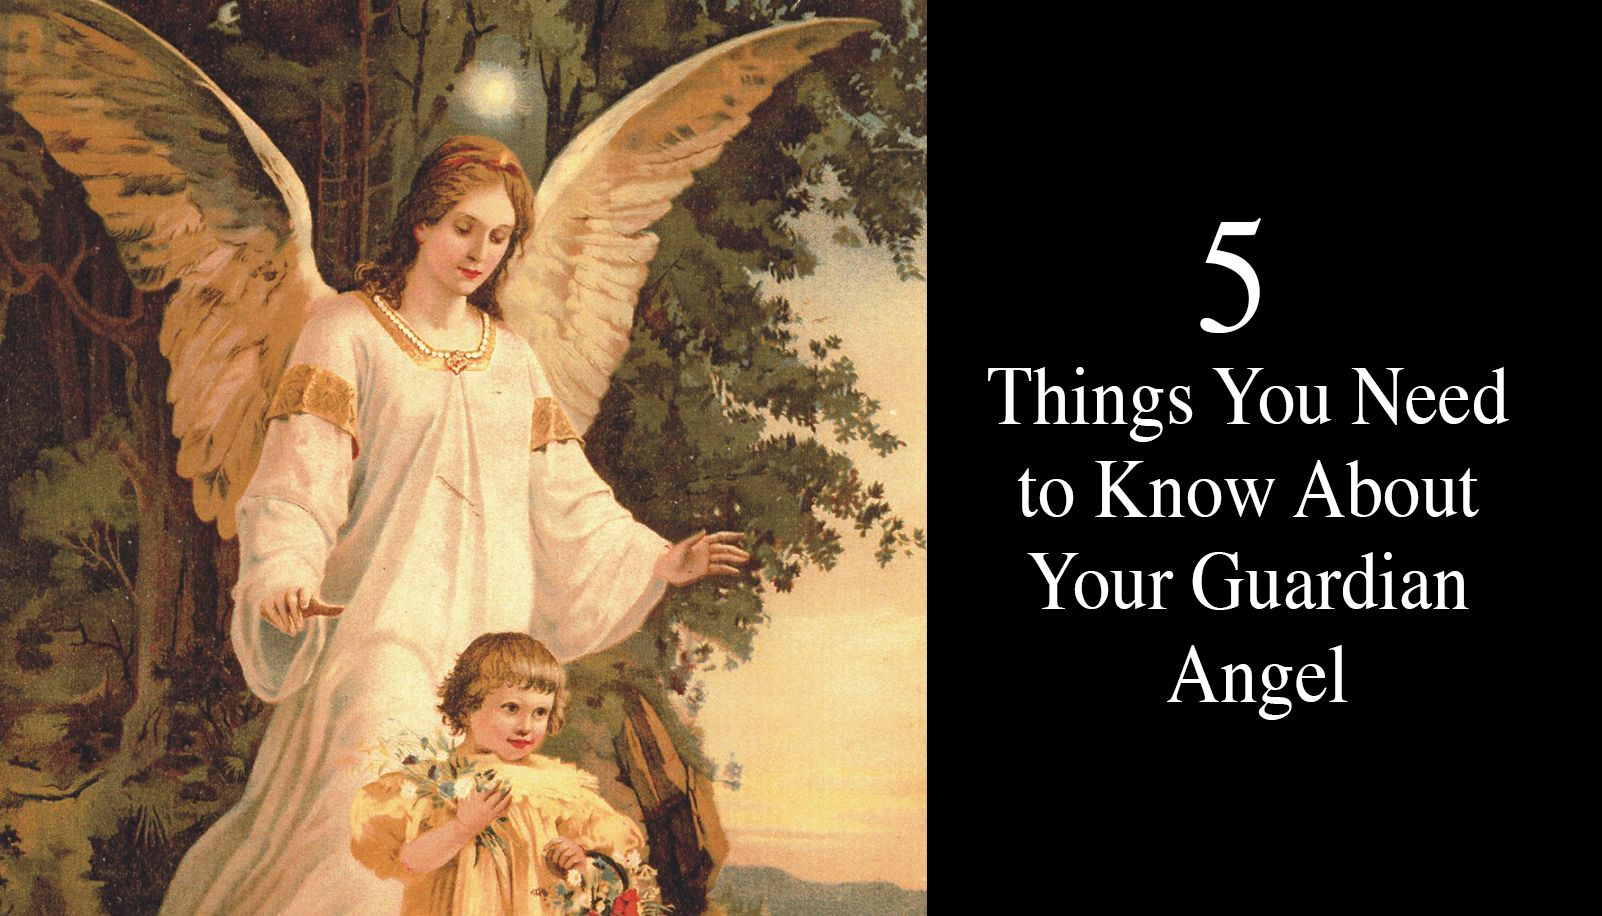 5-Things-You-Need-to-Know-About-Your-Guardian-Angel-2